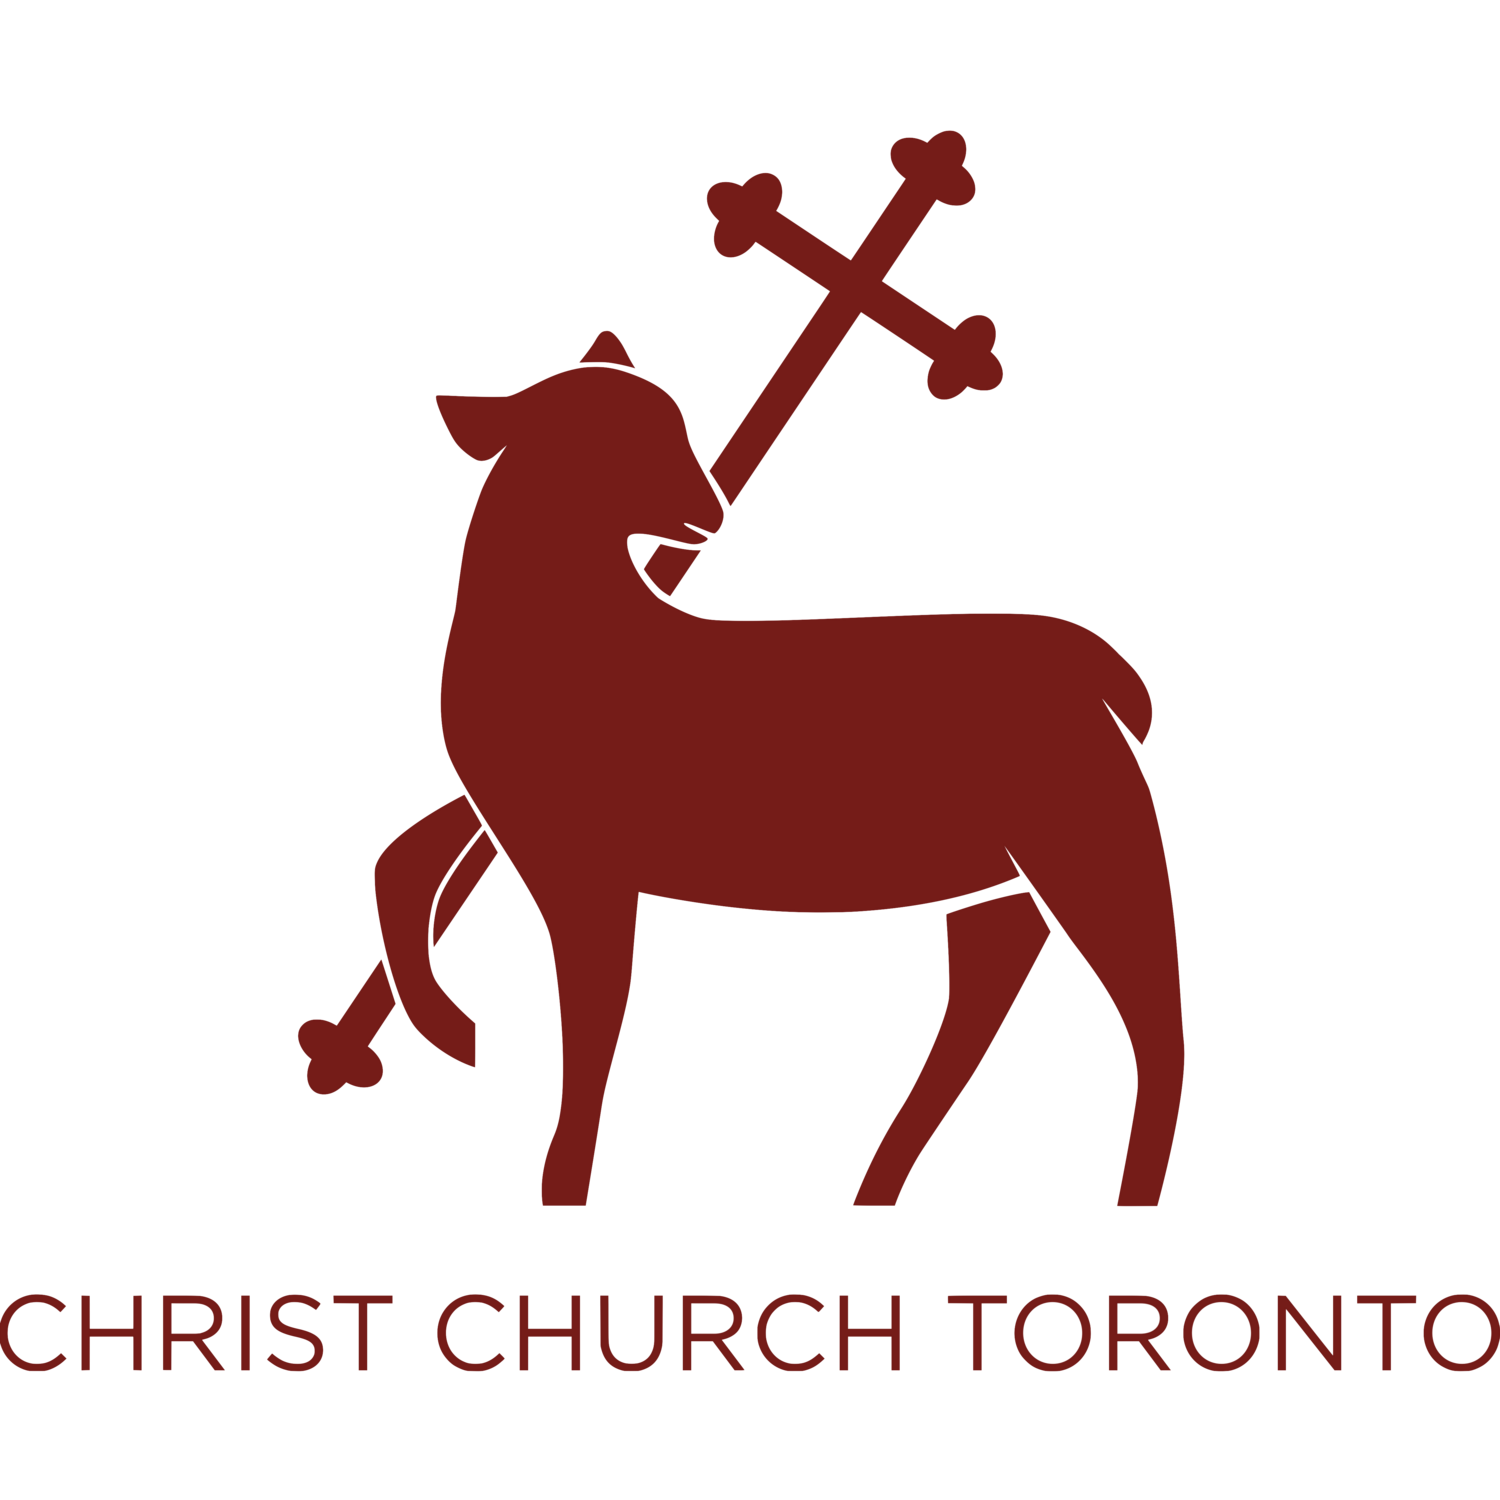 Christ Church Toronto